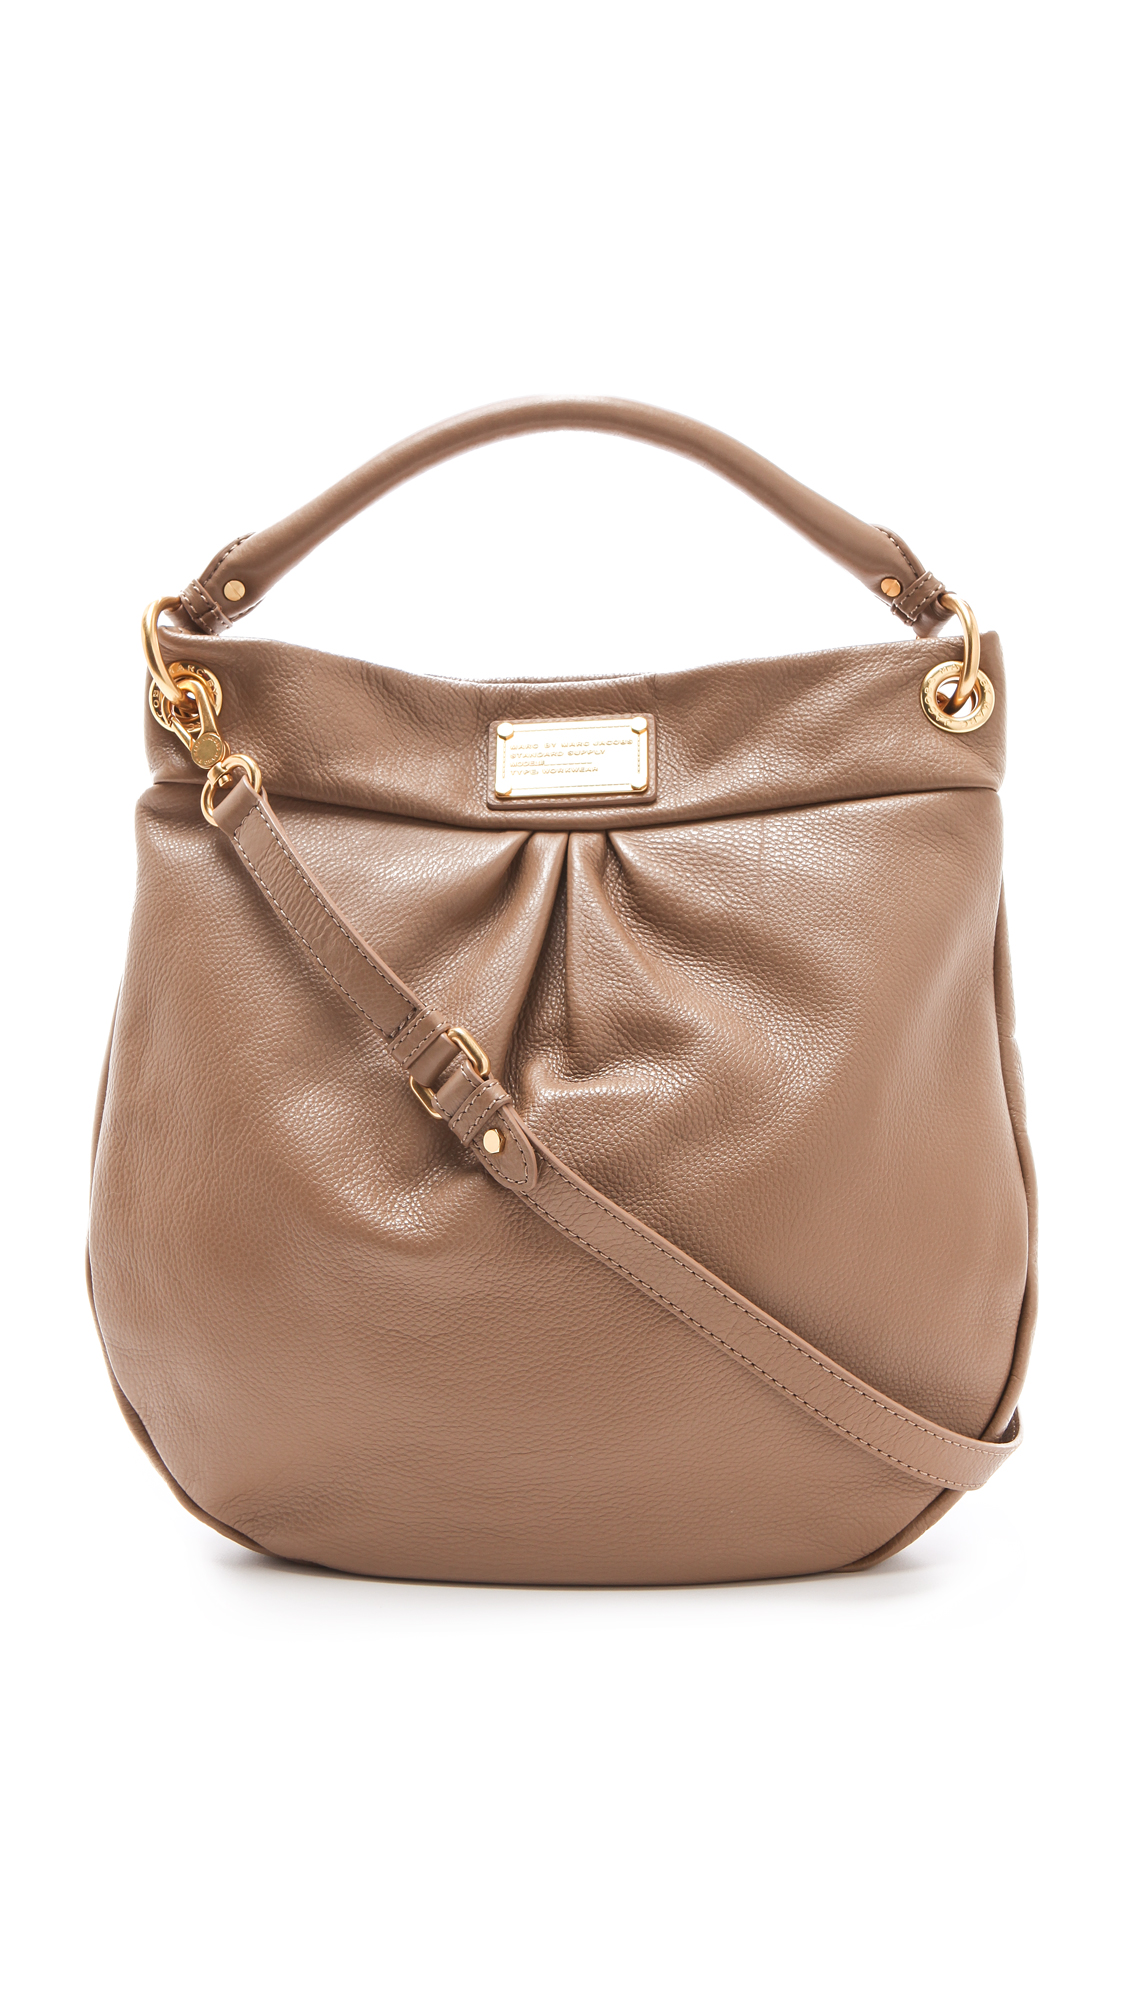 523016de5f77 Lyst - Marc By Marc Jacobs Classic Q Hillier Hobo in Natural